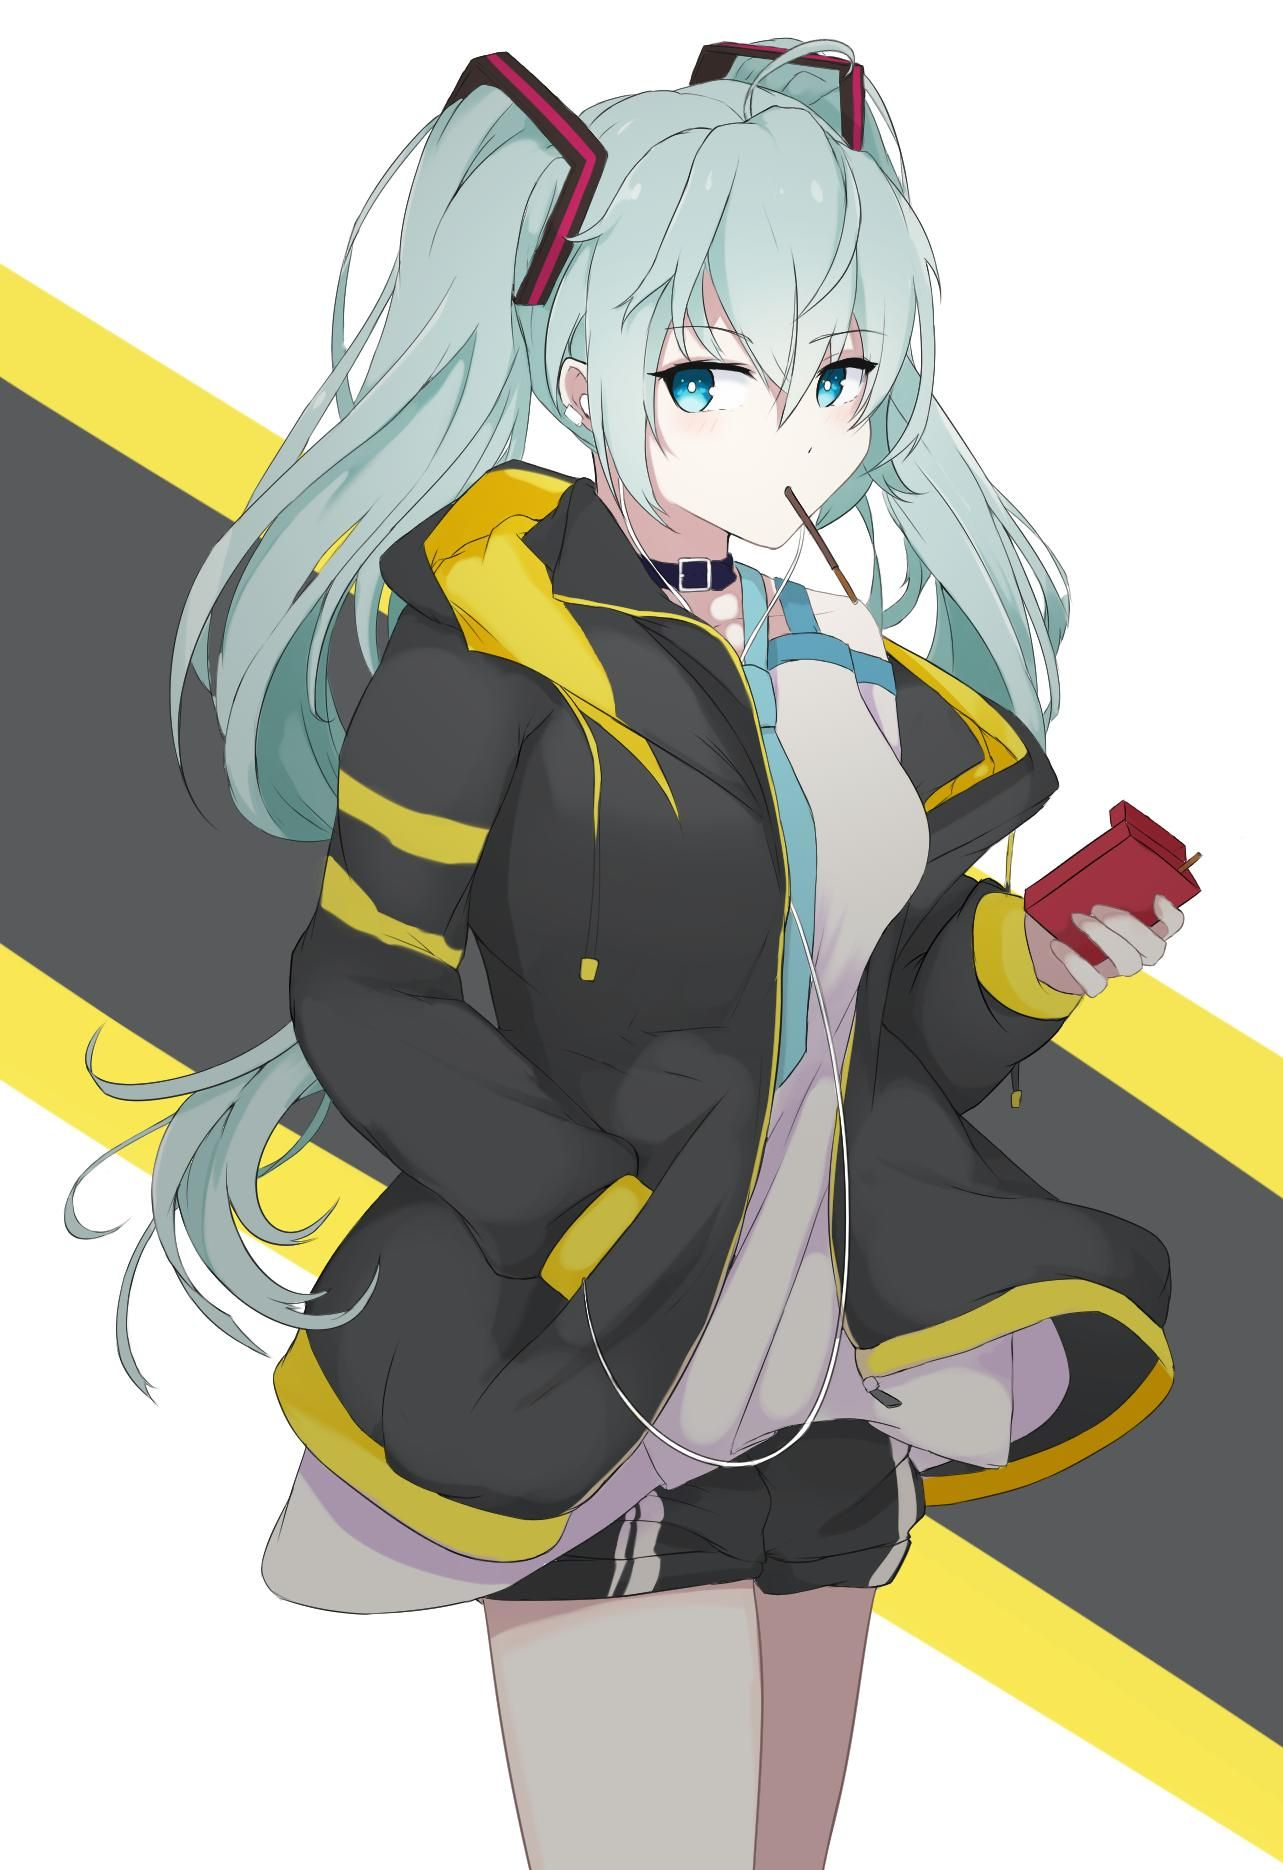 Miku listening to music [Vocaloid] in 2020 (With images